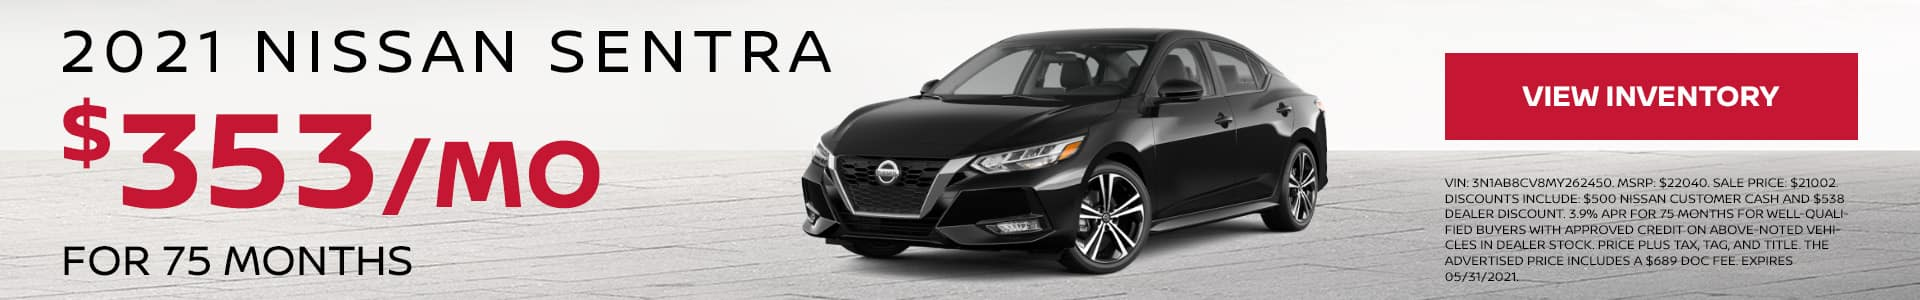 2021 Nissan Sentra $353 Per Month for 75 Months